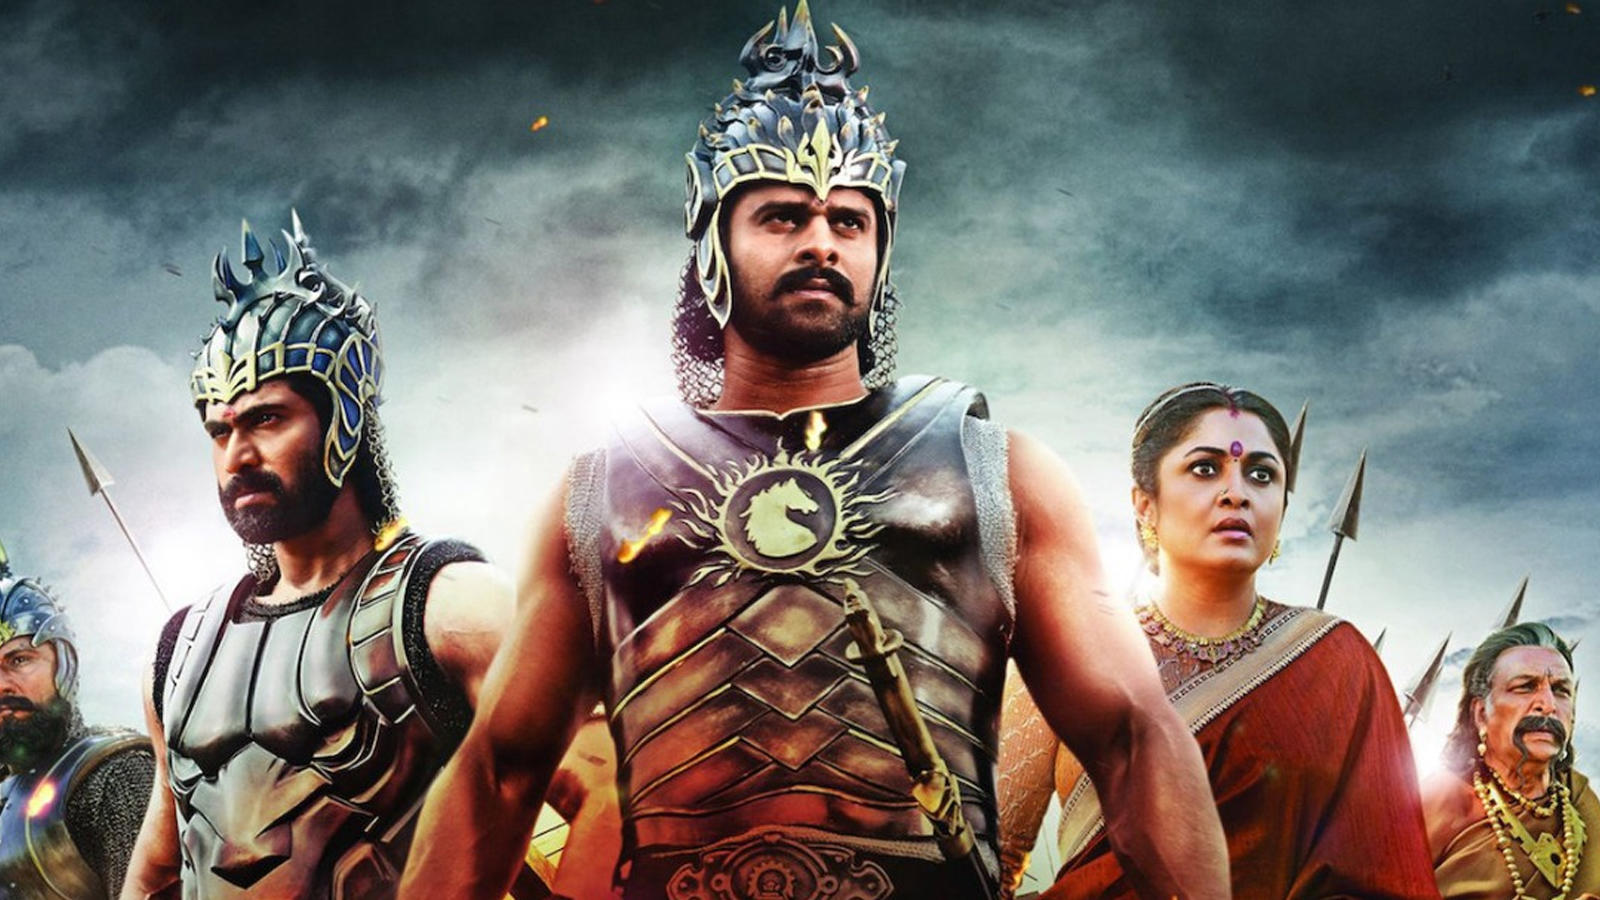 prabhas-trends-on-social-media-as-baahubali-2-the-conclusion-gets-ready-to-re-release-in-usa-on-his-birthday